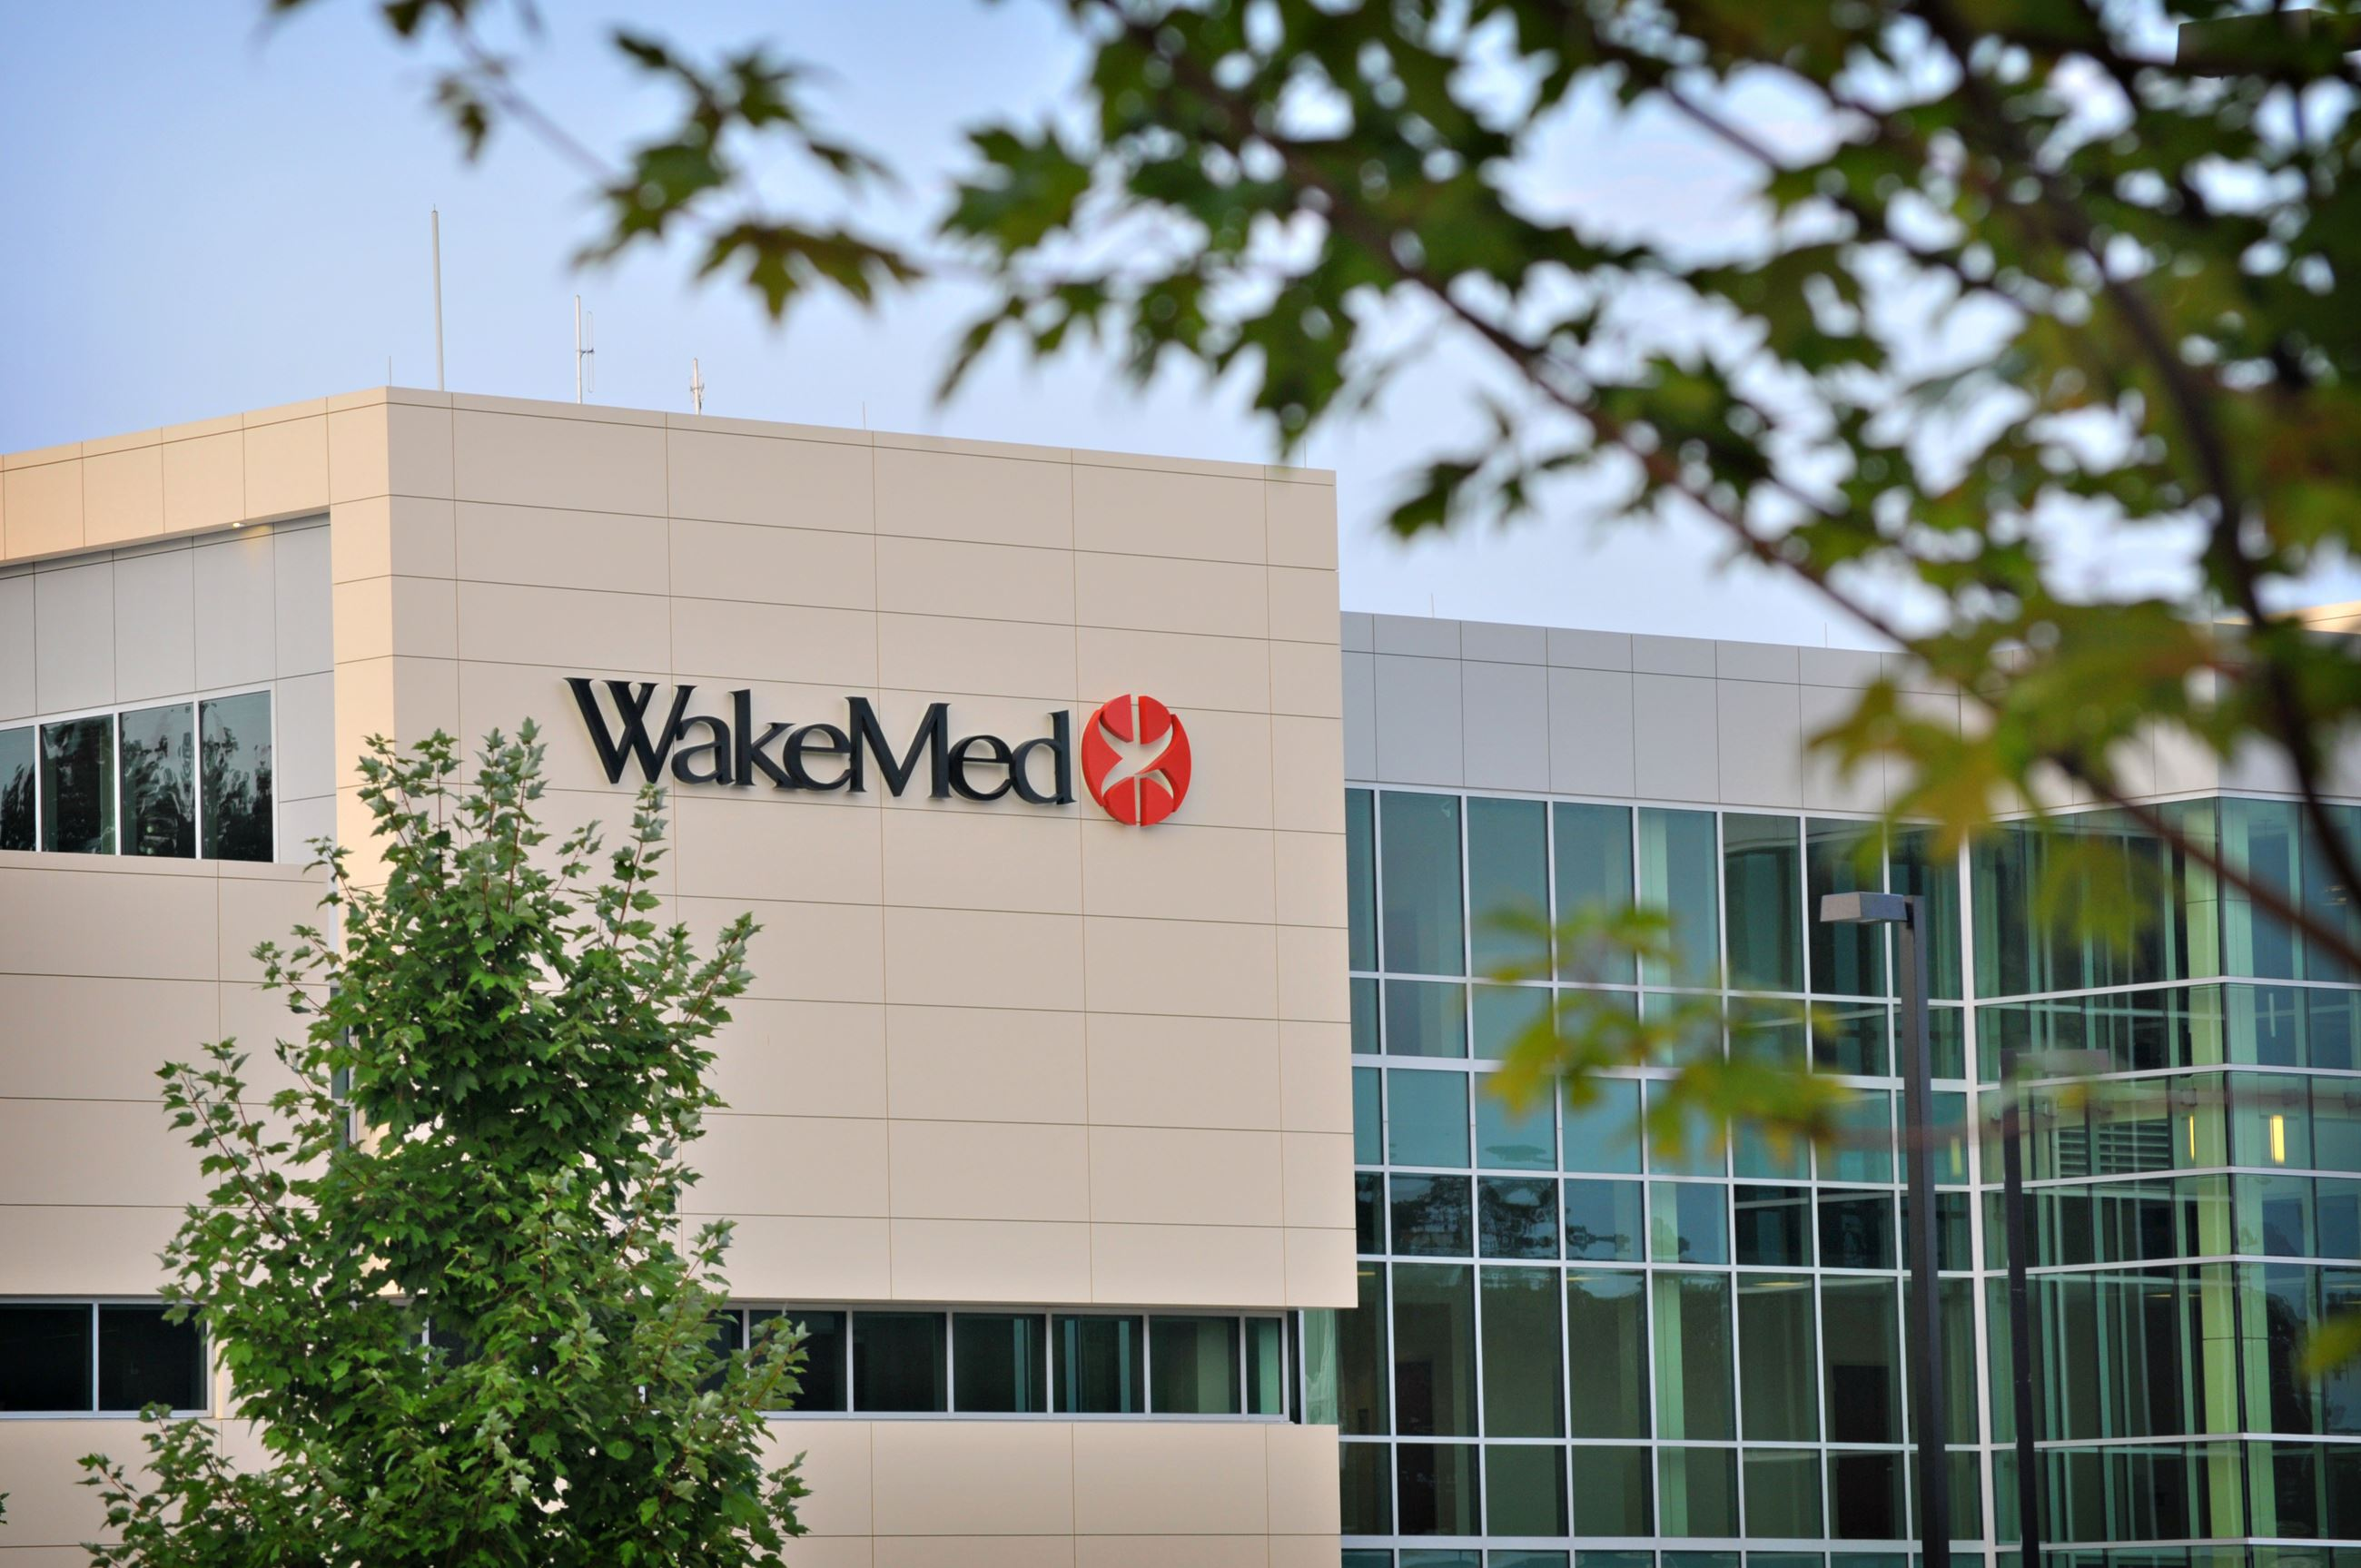 WakeMed Healthplex